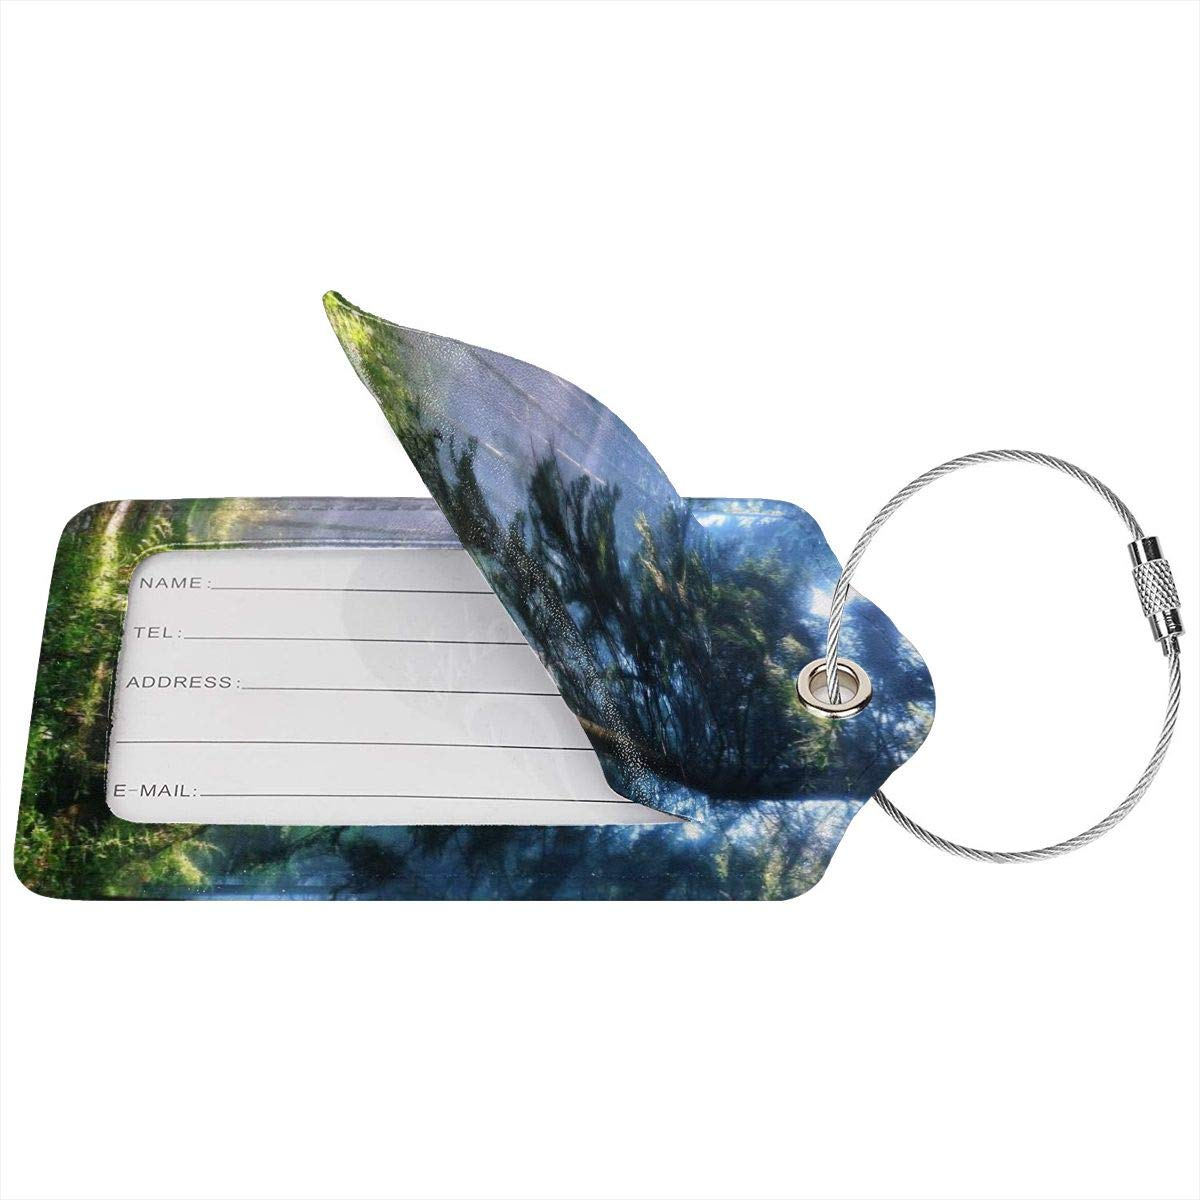 Forest Morning Large Nature Trees Sunrise Foggy Woods Landscape Luggage Tag Label Travel Bag Label With Privacy Cover Luggage Tag Leather Personalized Suitcase Tag Travel Accessories